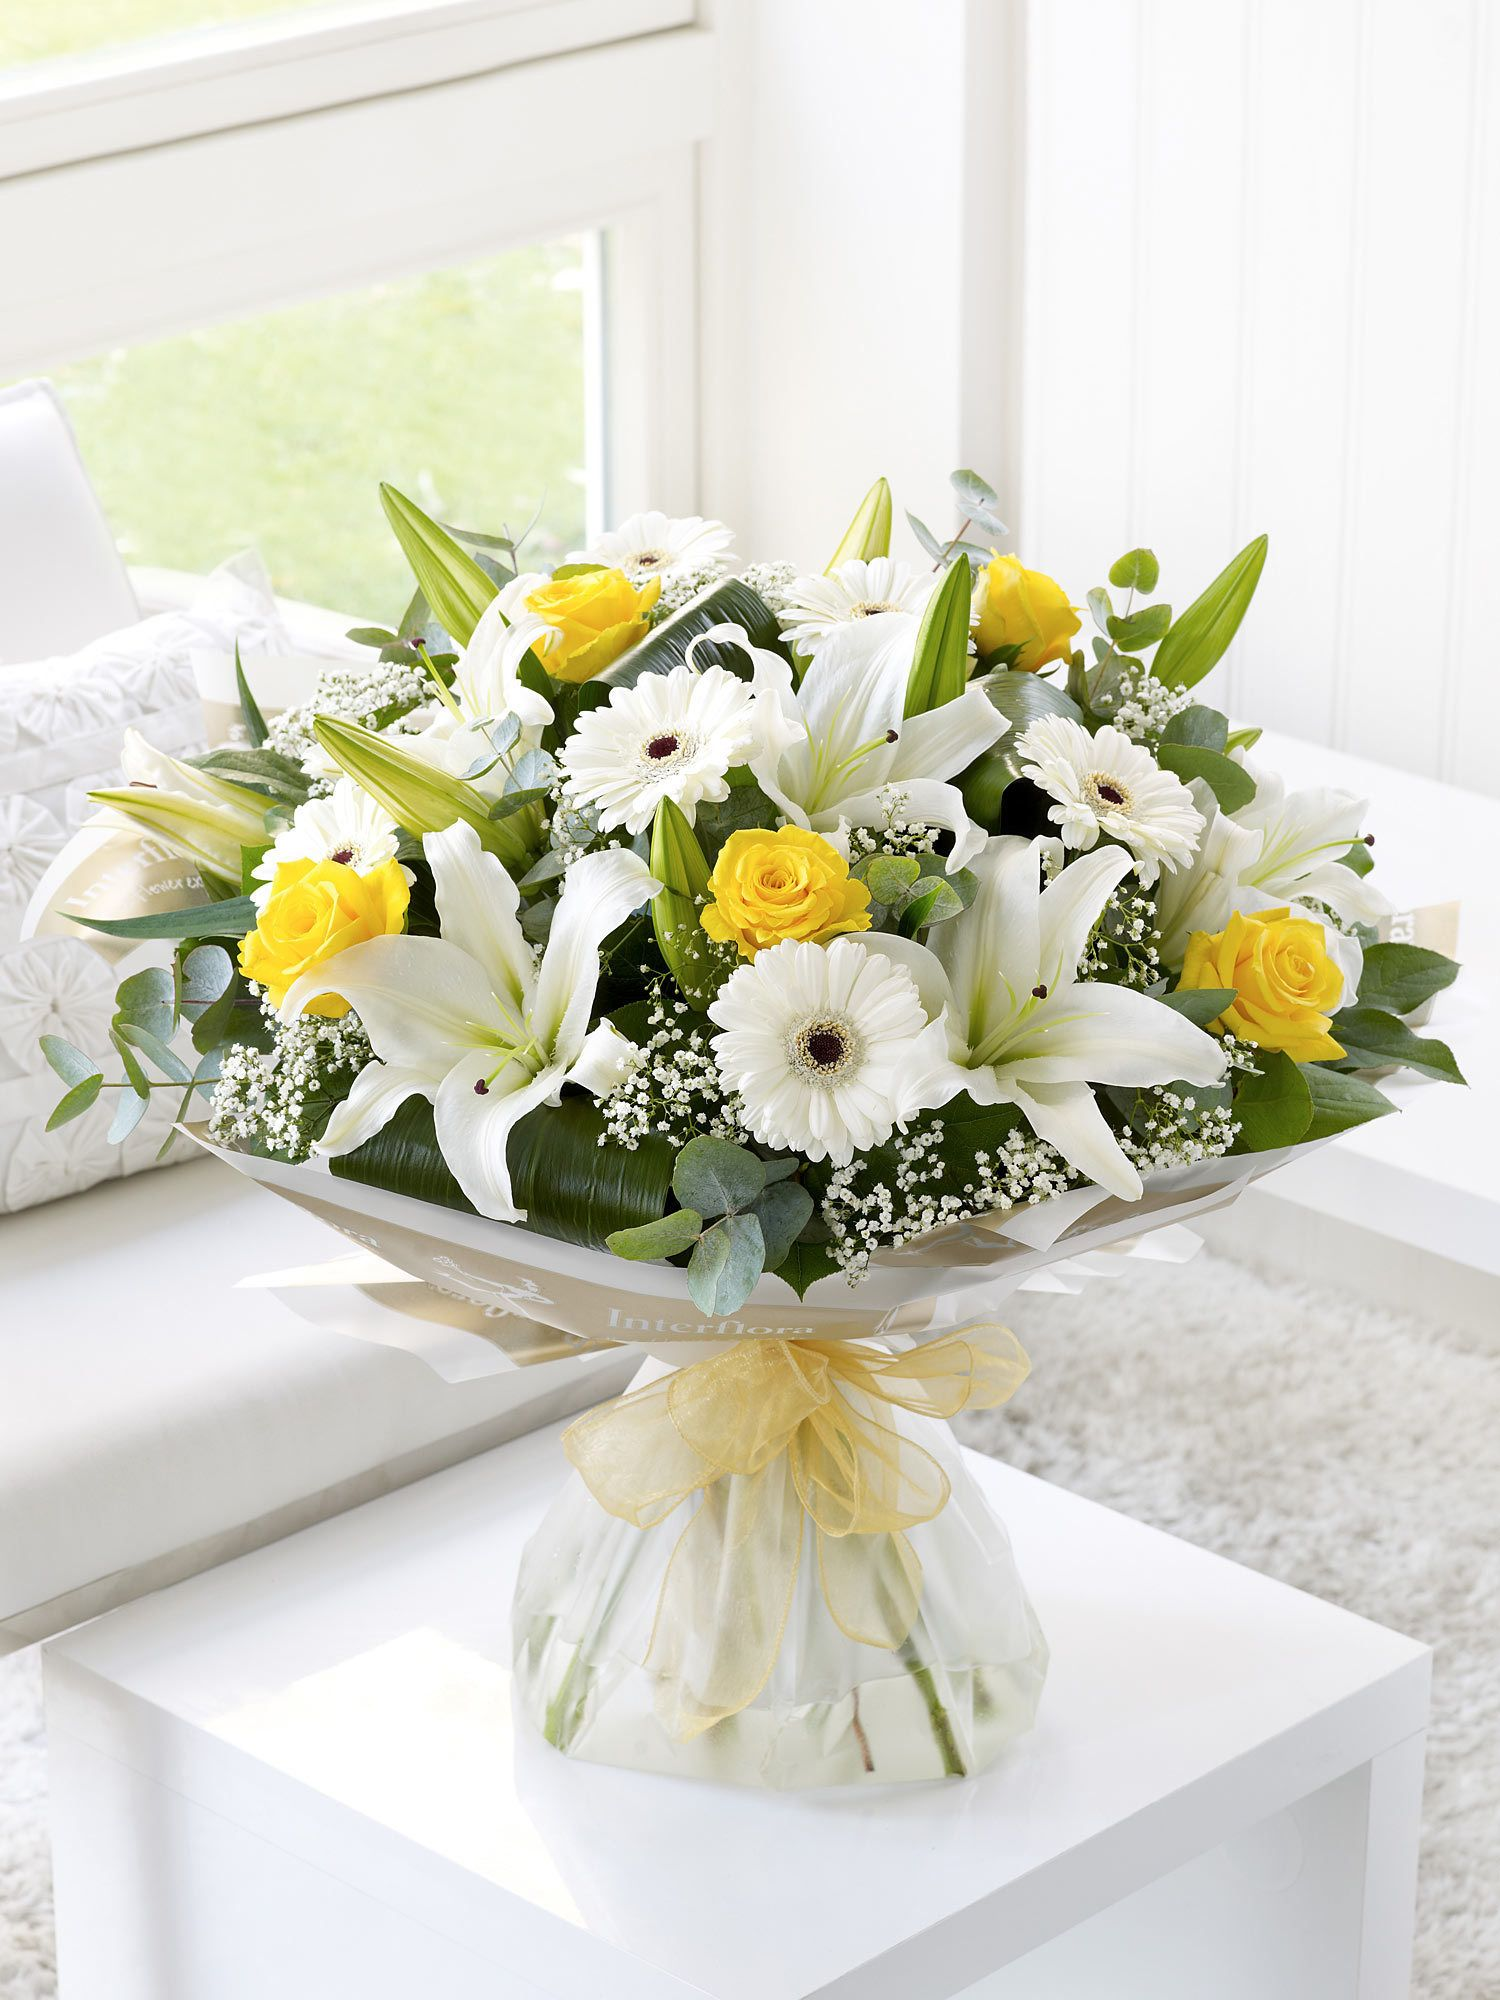 We love the way these sunshine yellow roses really light